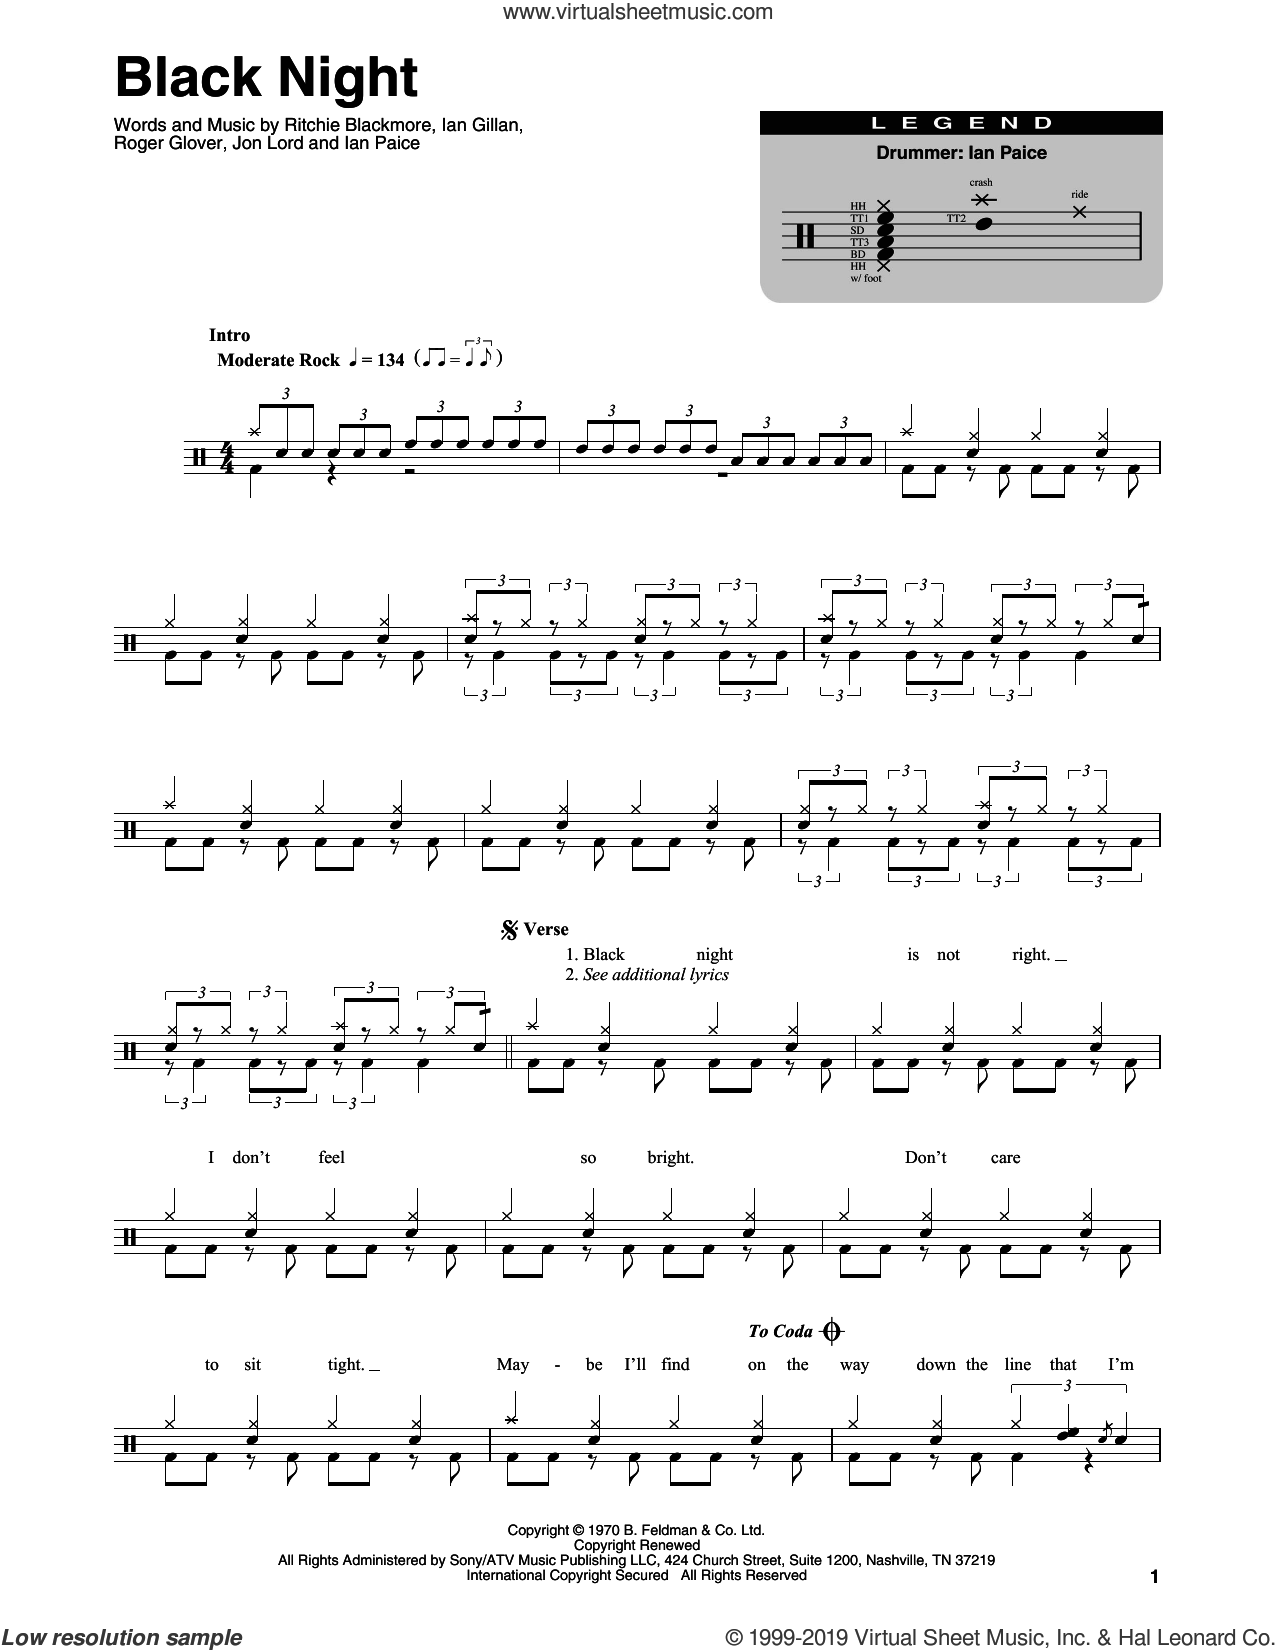 Black Night sheet music for drums by Deep Purple, Ian Gillan, Ian Paice, Jon Lord, Ritchie Blackmore and Roger Glover, intermediate skill level